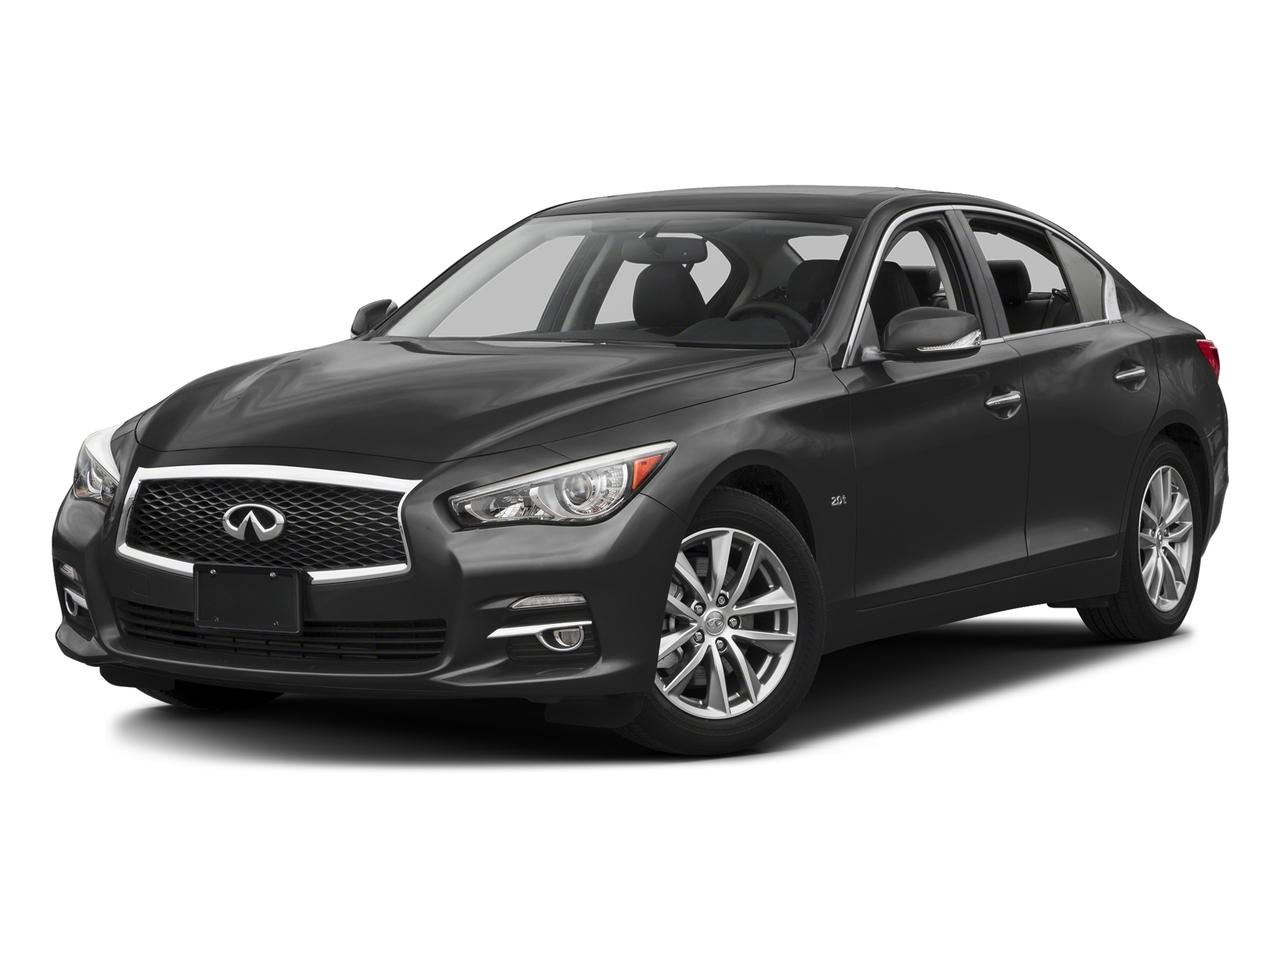 2017 INFINITI Q50 Vehicle Photo in Watertown, CT 06795